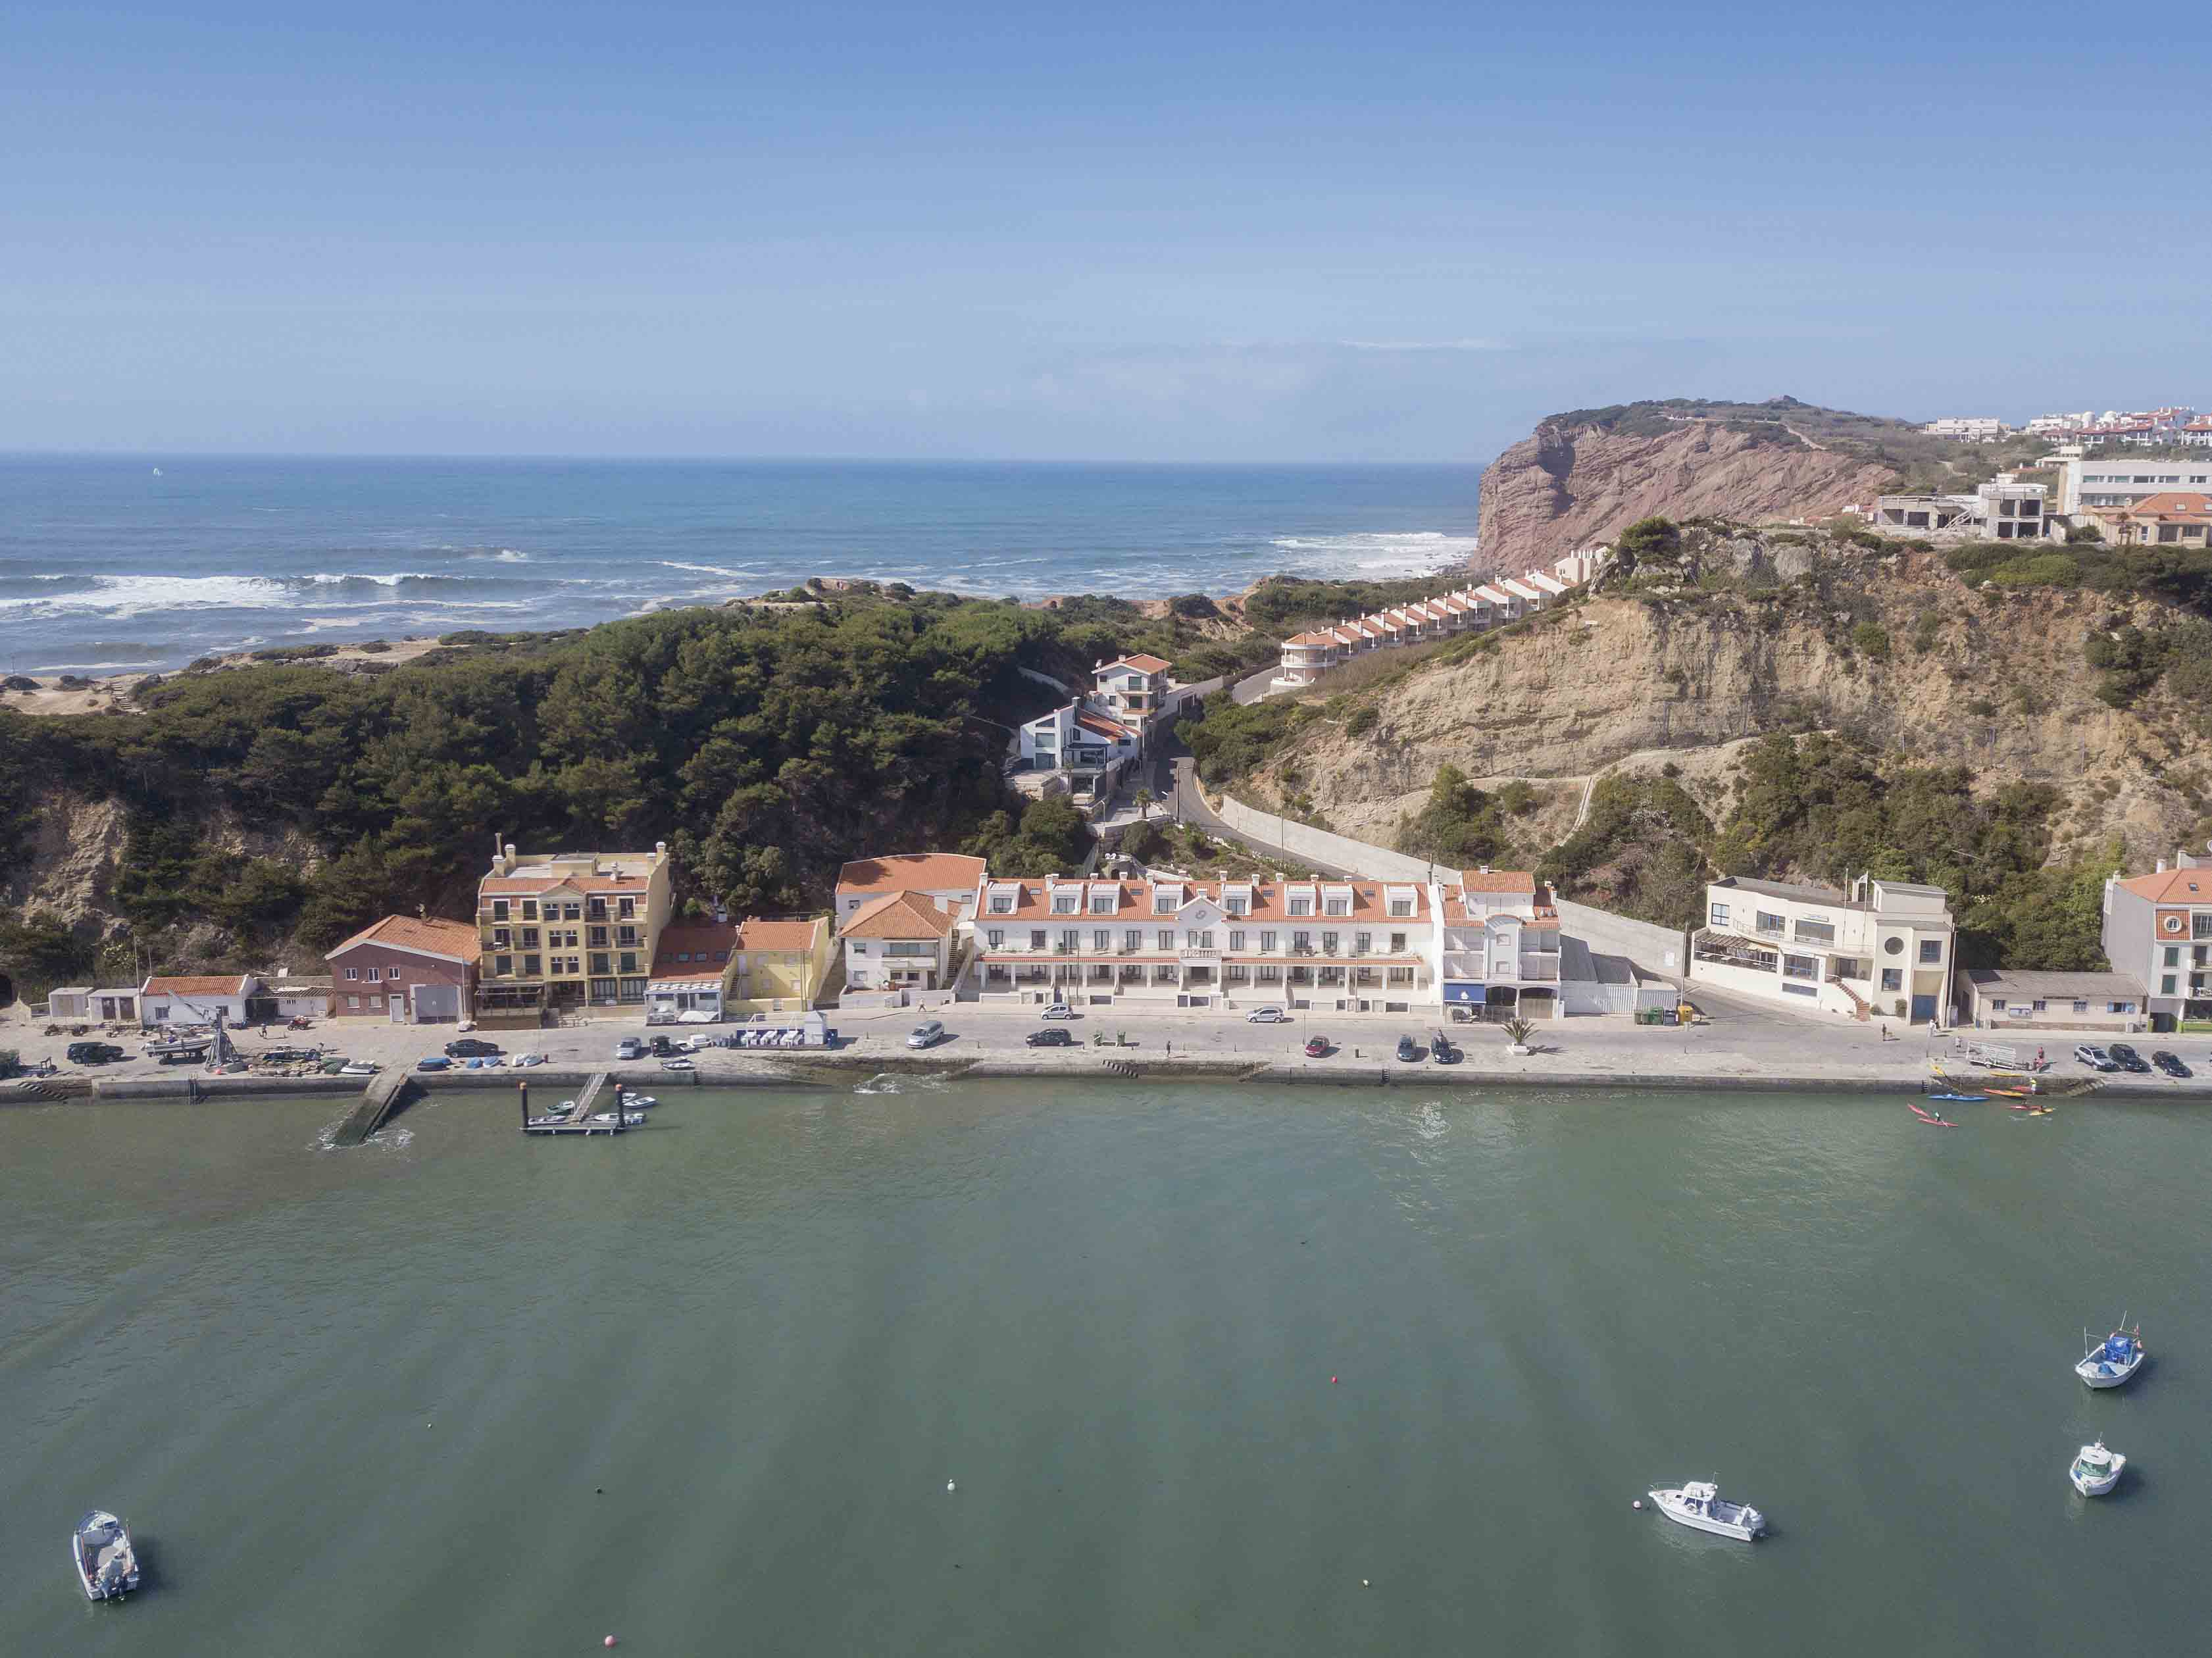 26-cais-sao-martinho-porto-silver-coast-new-buil-construction-portugal-for-sale